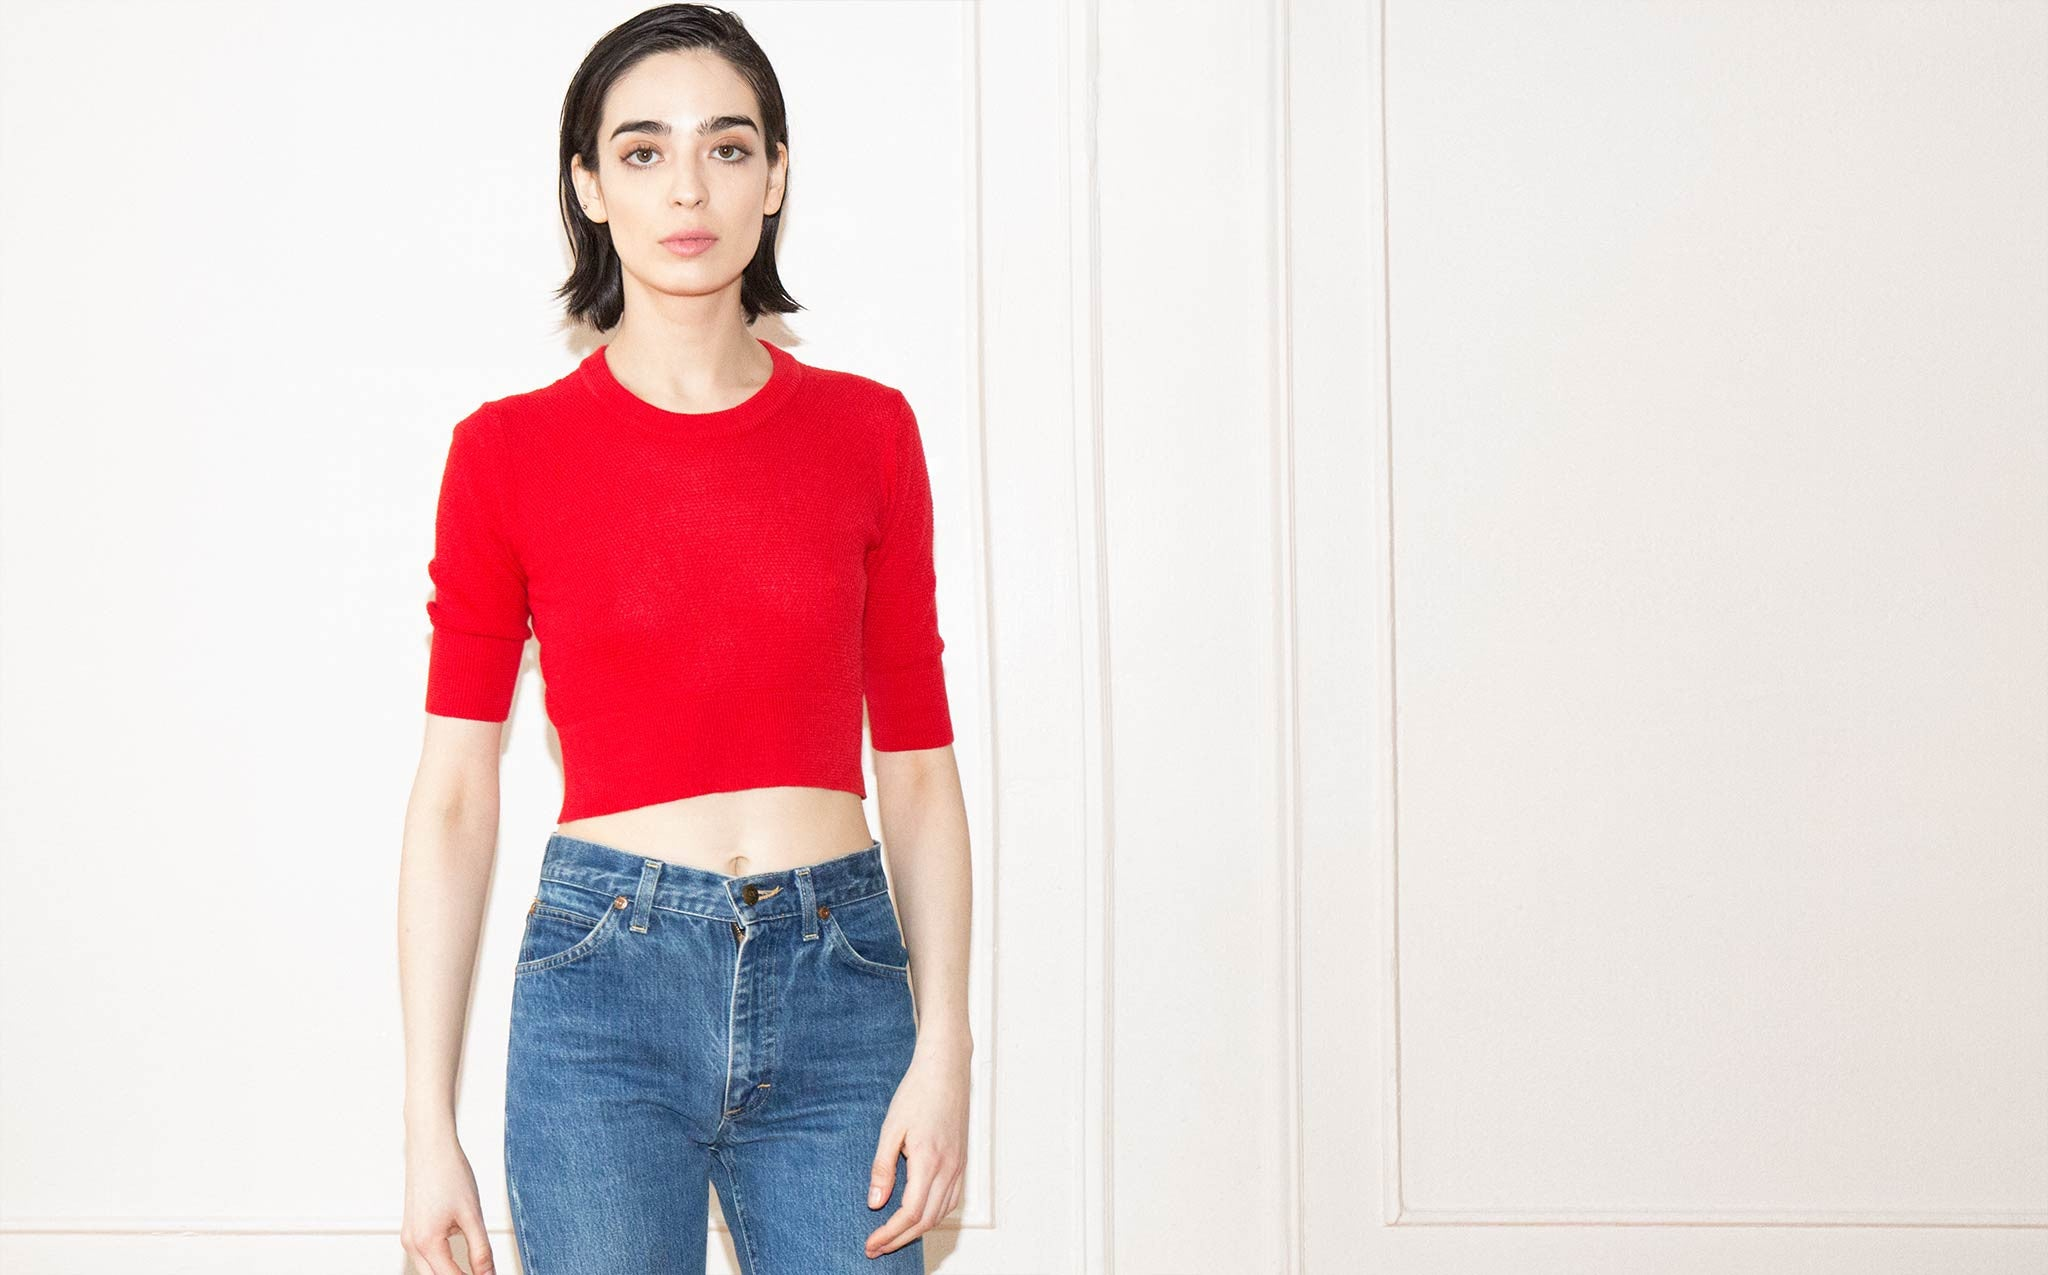 Hesperios Camille Poppy Red Crop Top